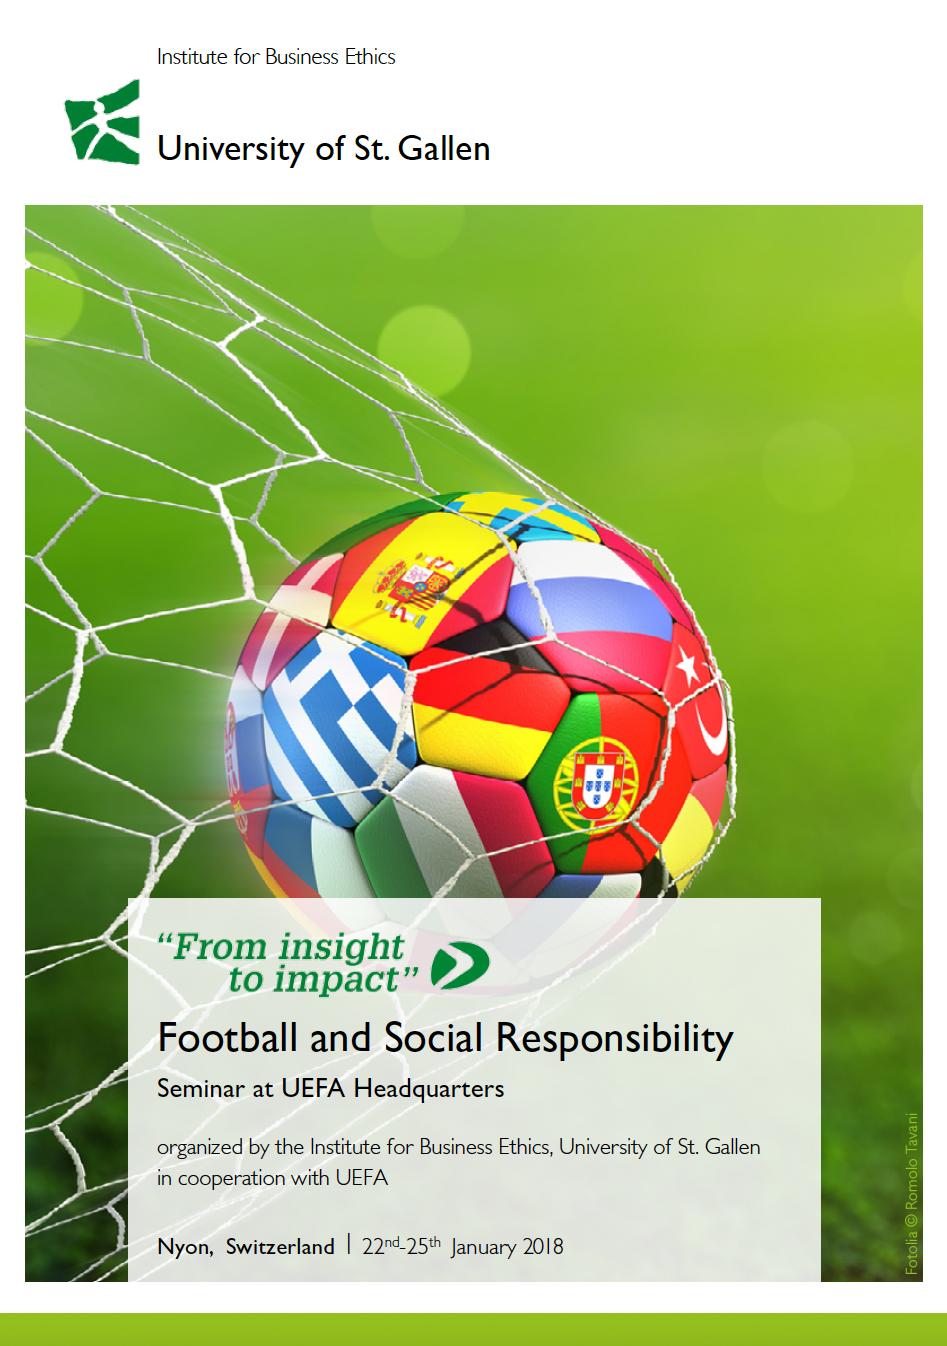 UEFA FSR Compact Course